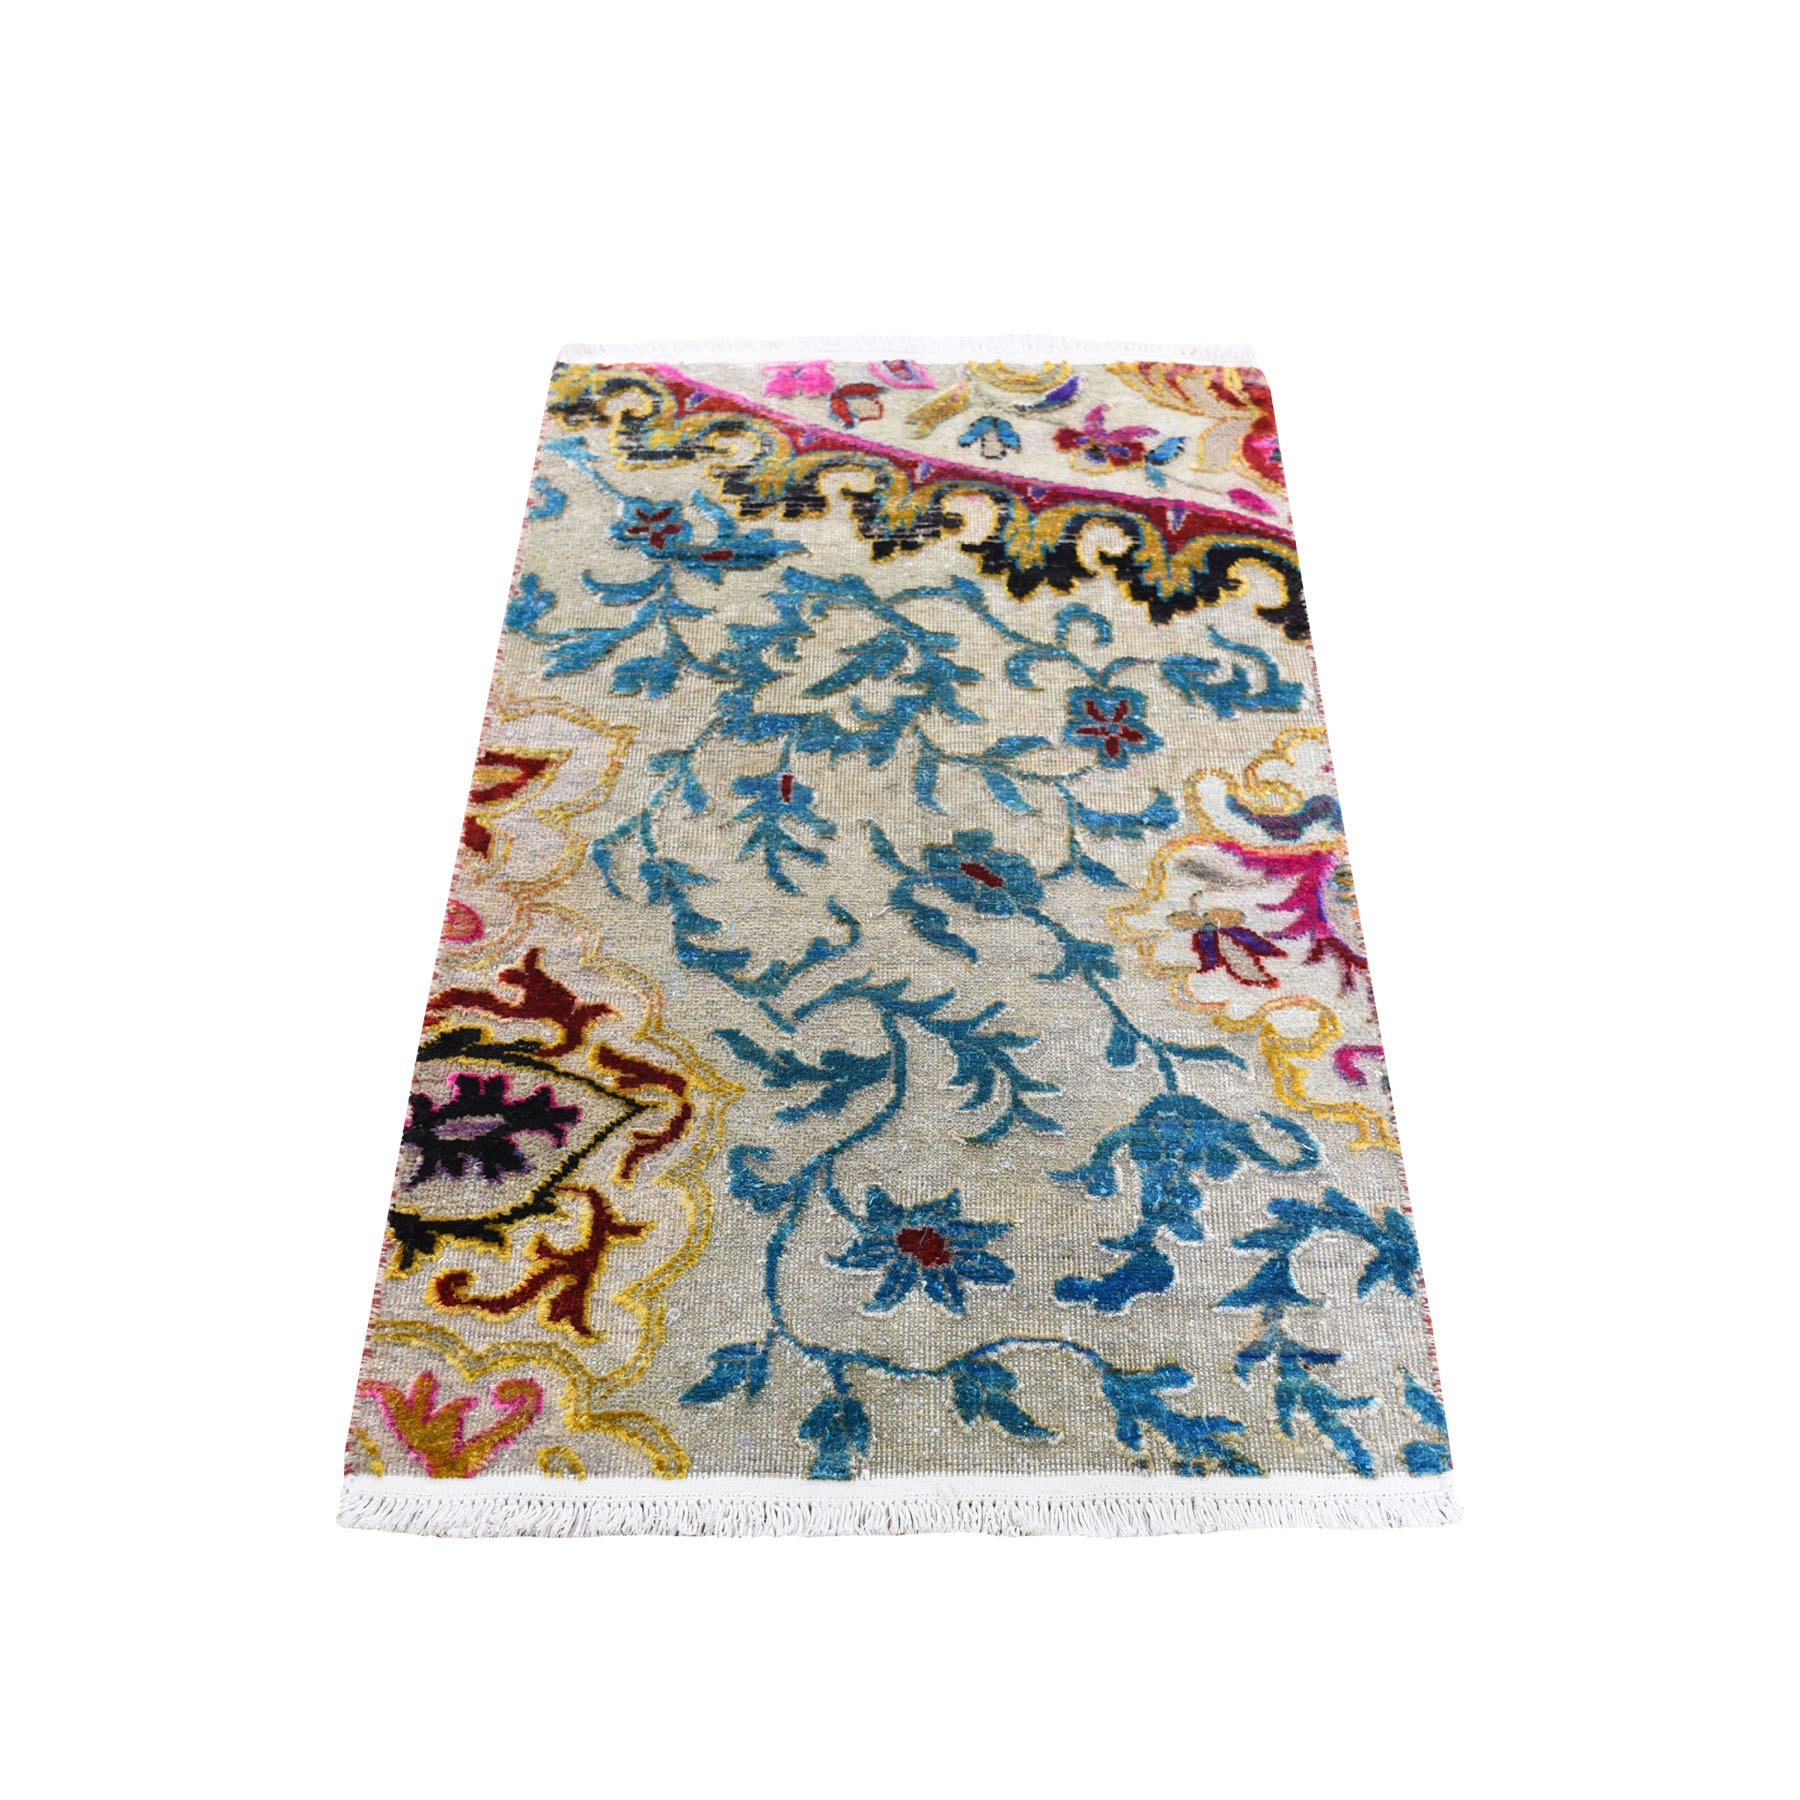 wool and silk rugs LUV422649